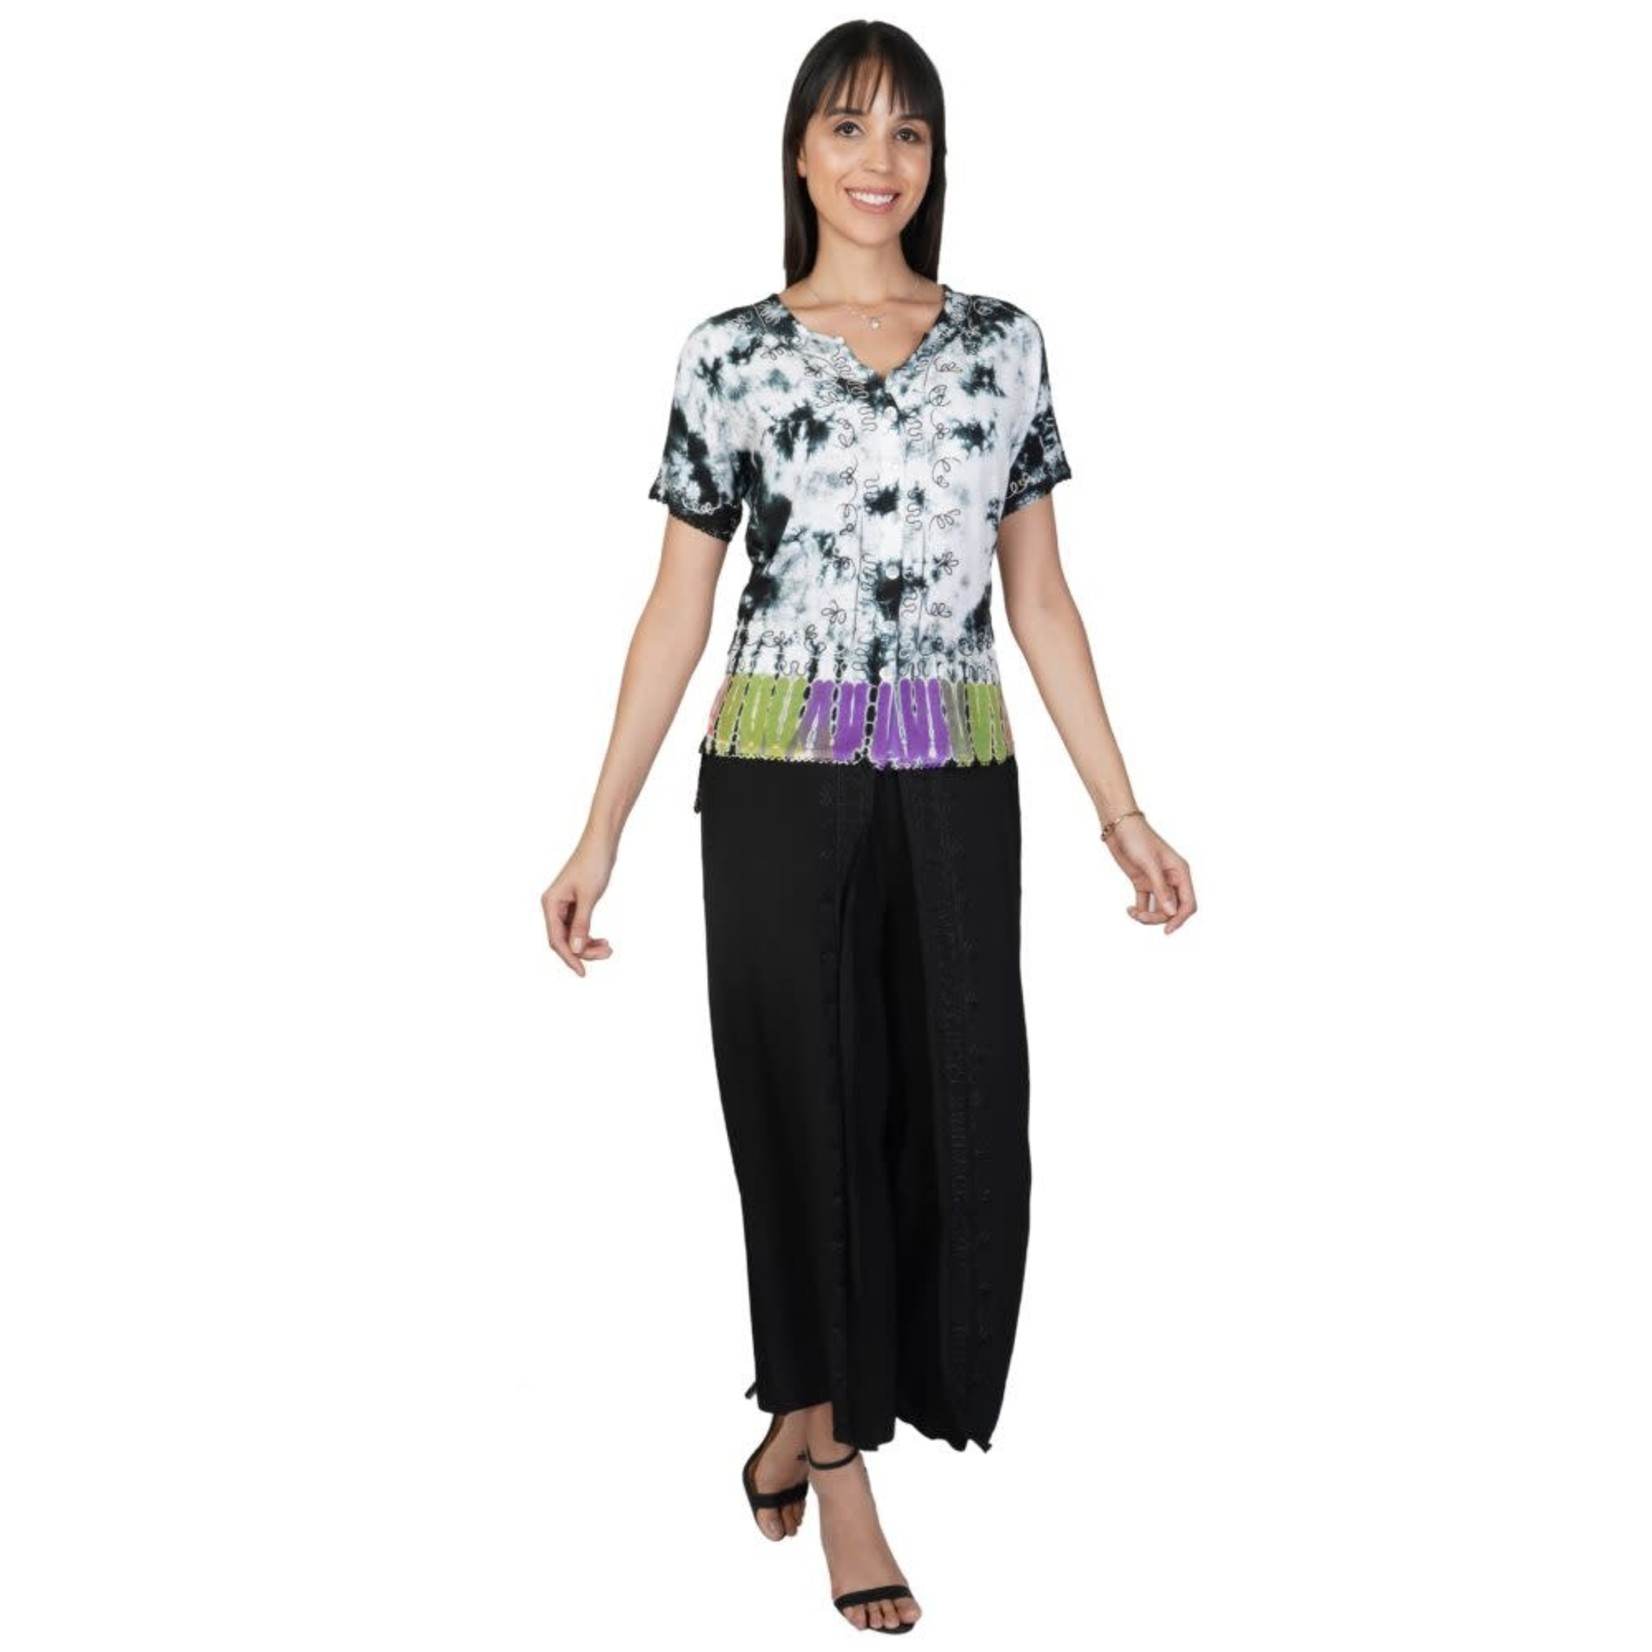 Parsley and Sage Janis SS Top w/ Black Spatter and Multi Color Waist